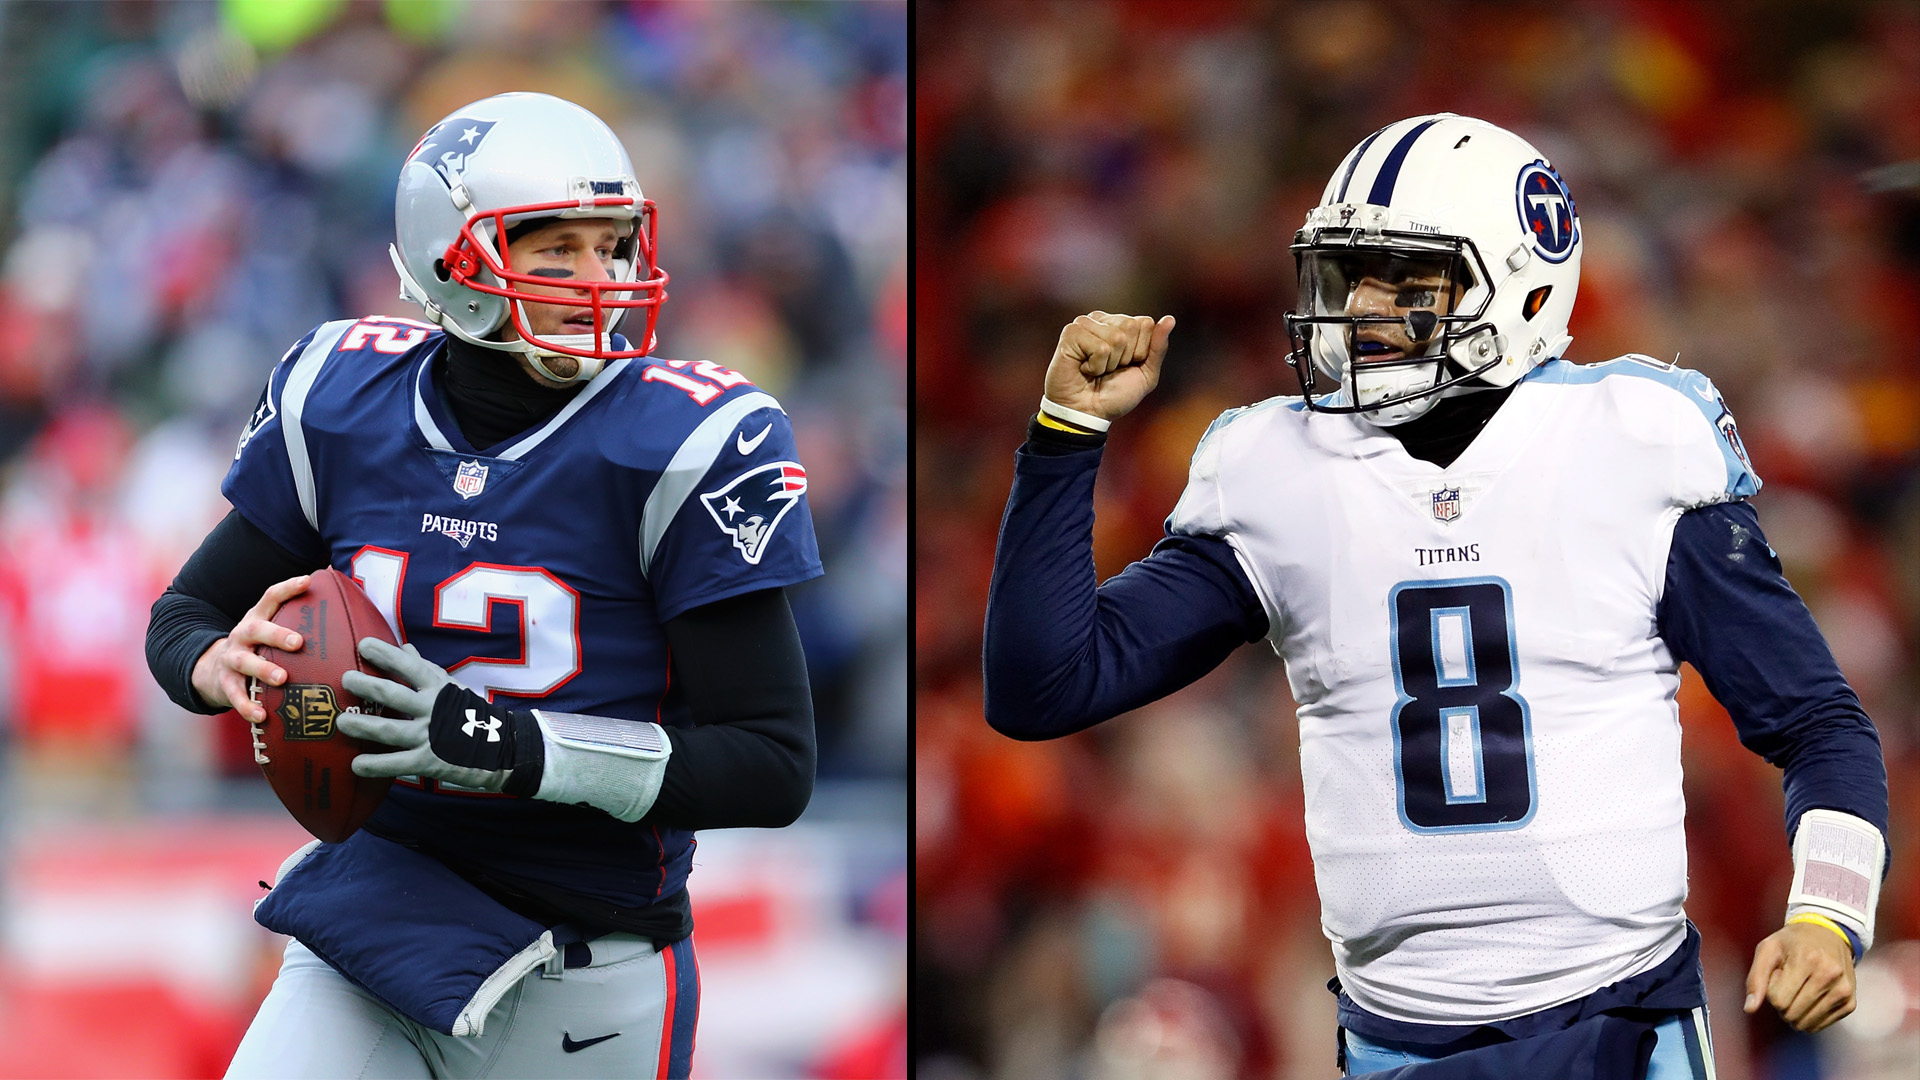 Patriots to host Titans in divisional round game Saturday night